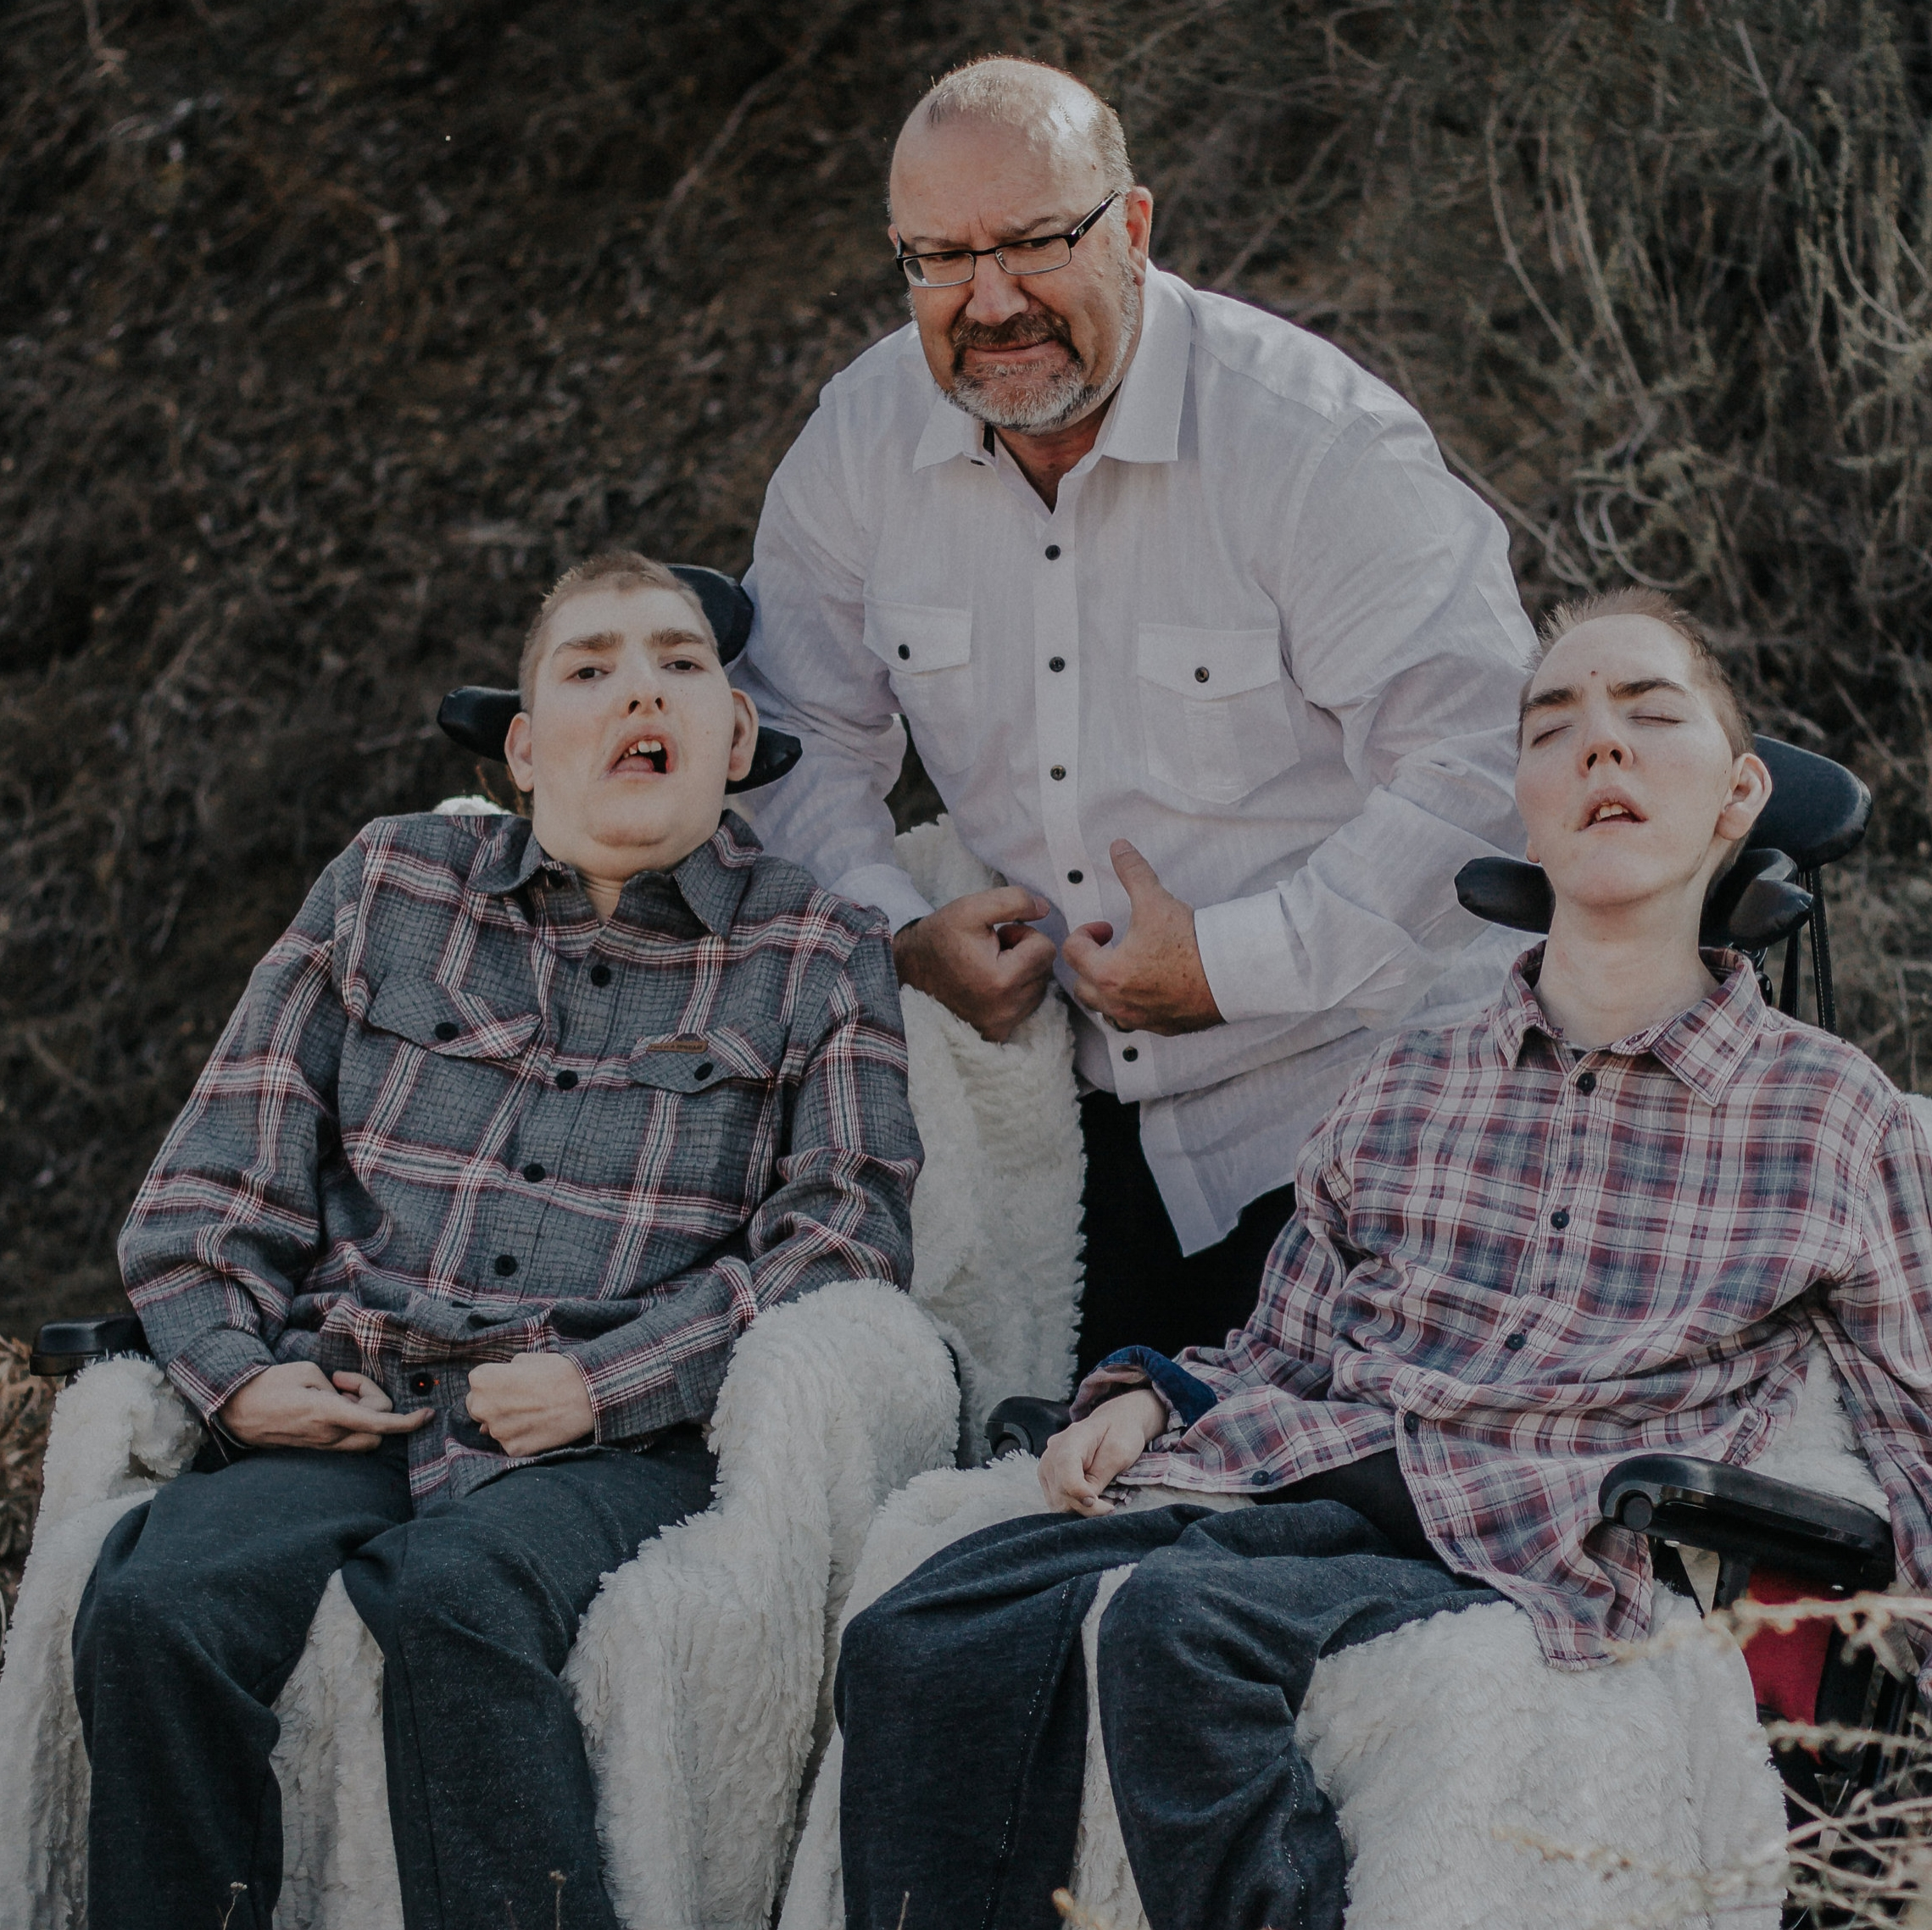 Walker being silly with his sons, Joshua & Matthew